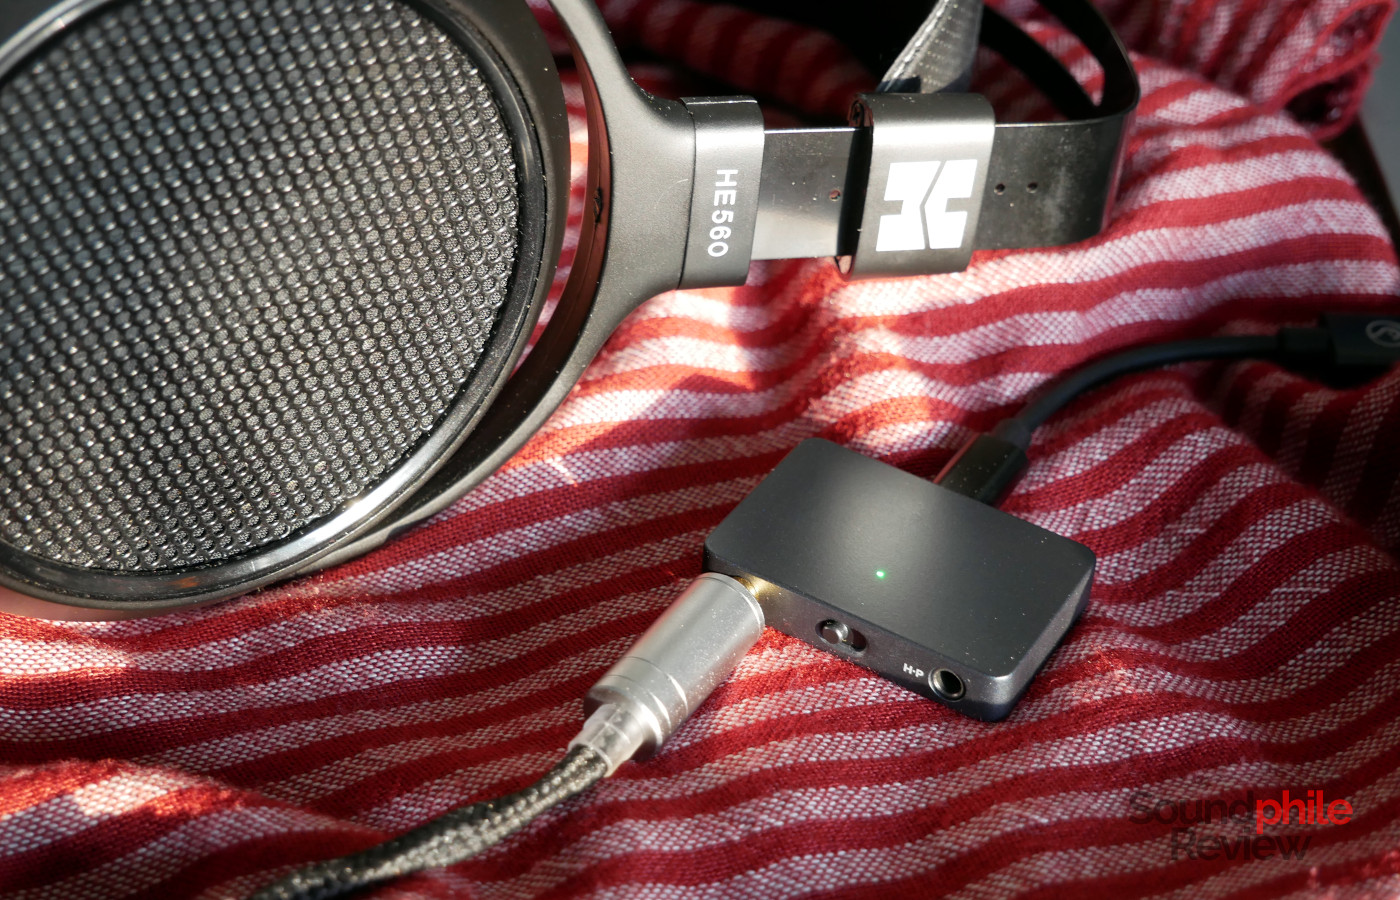 EarStudio HUD100 review: power of tiny - Soundphile Review